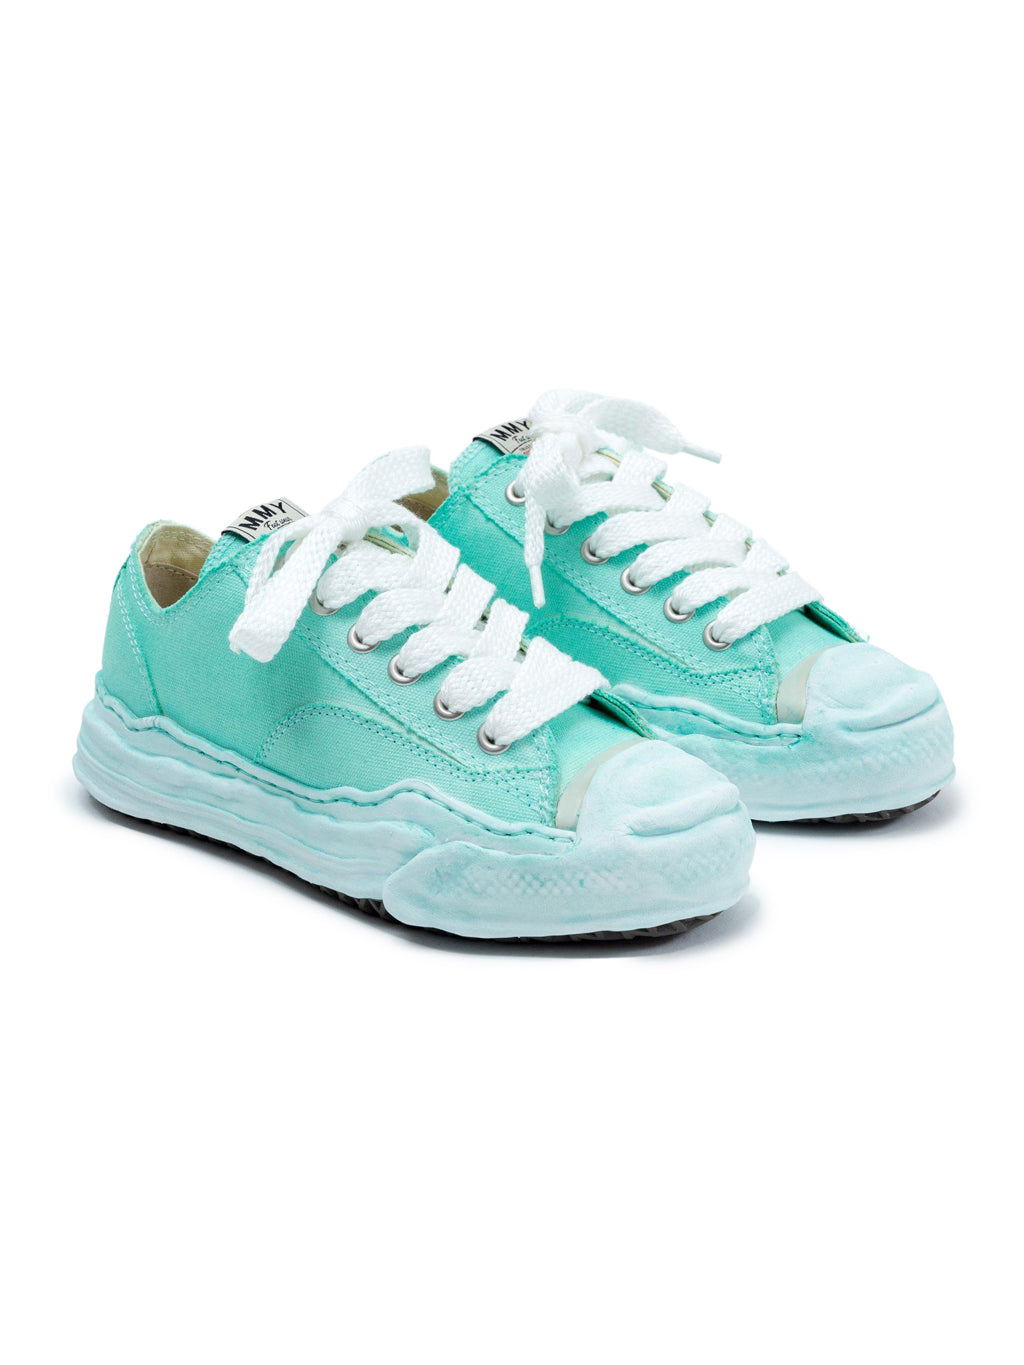 Green Original Sole Toe Cap Low Cut Sneakers